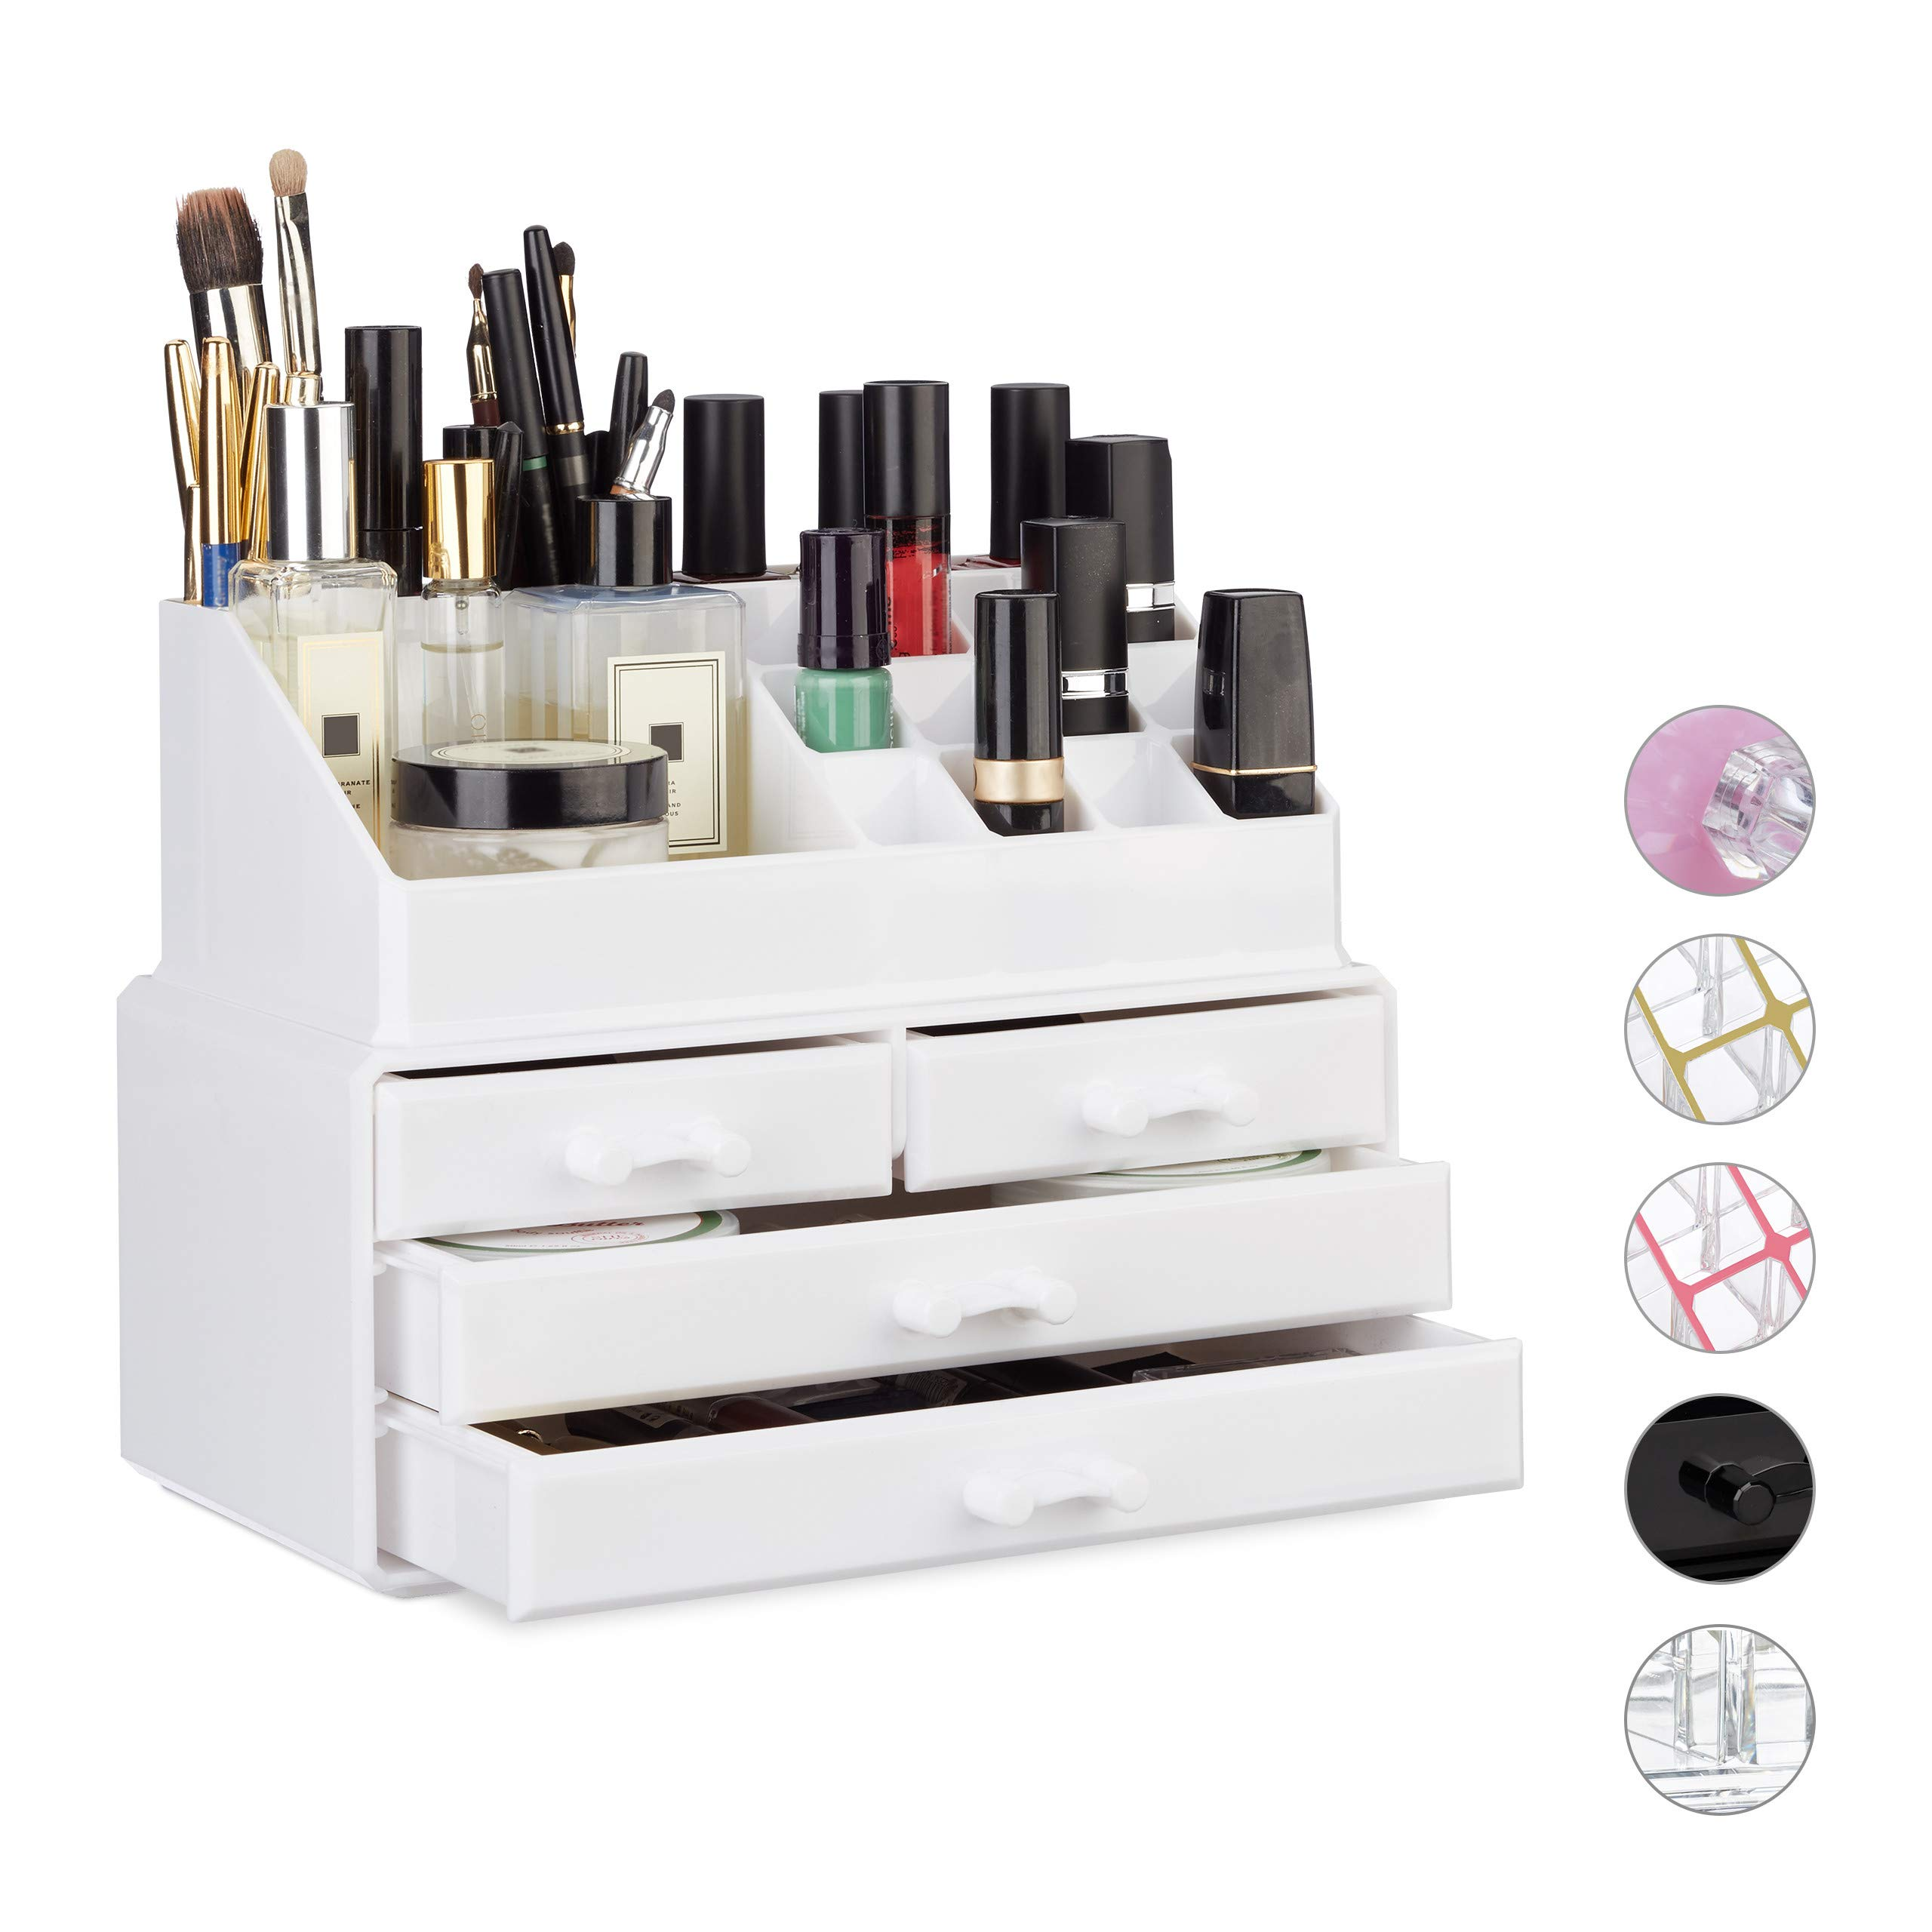 Relaxdays Makeup Organizer with 4 Drawers, Cosmetics Holder for Nail Polish and Lipstick, Acrylic Makeup Kit, White